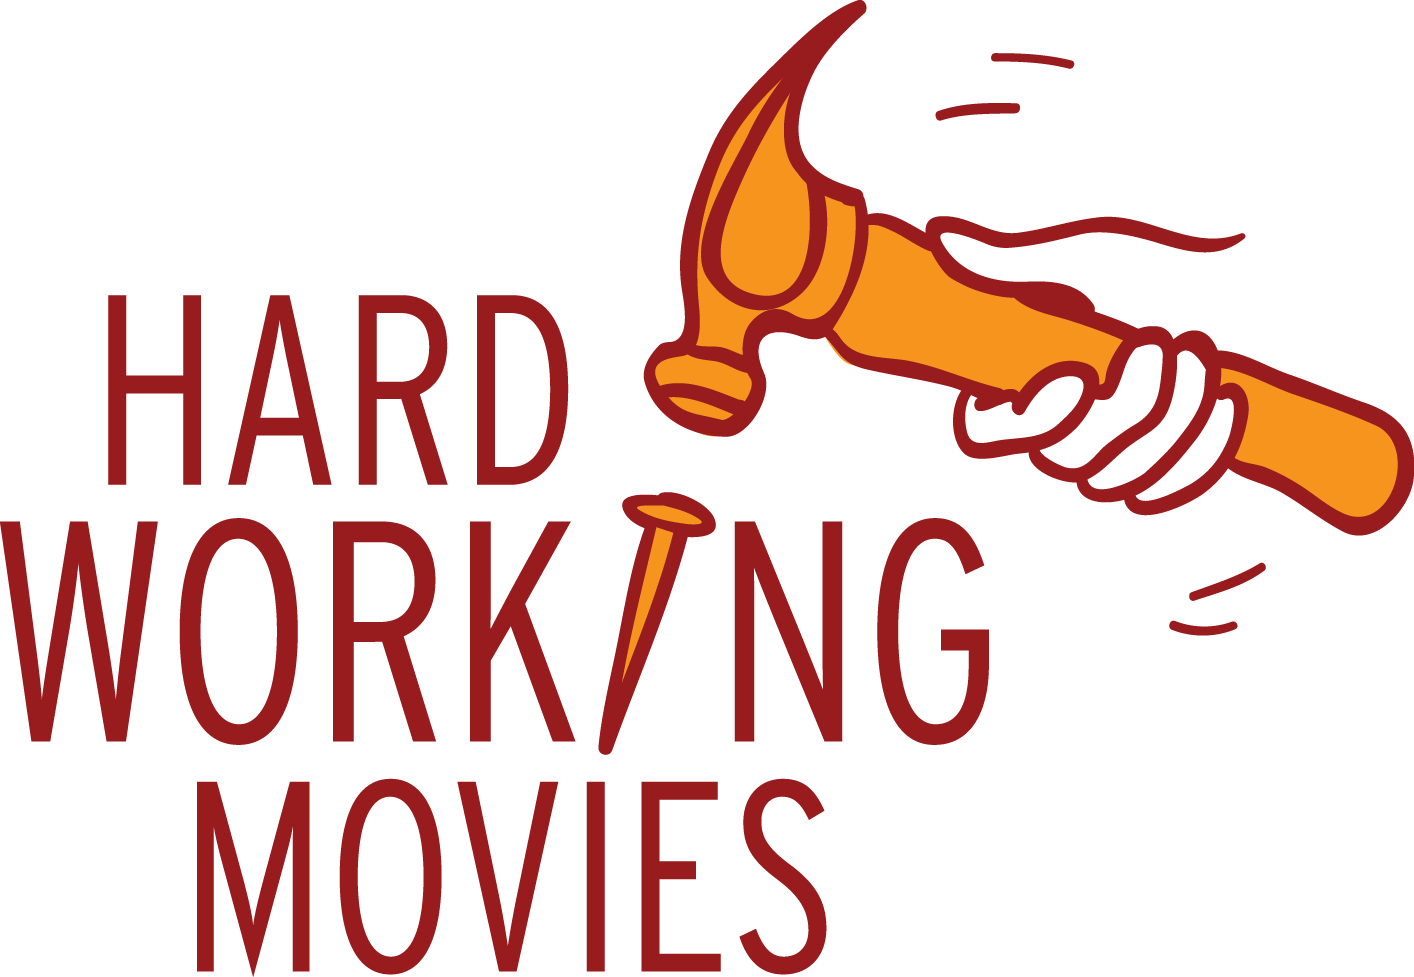 Hard Working Movies